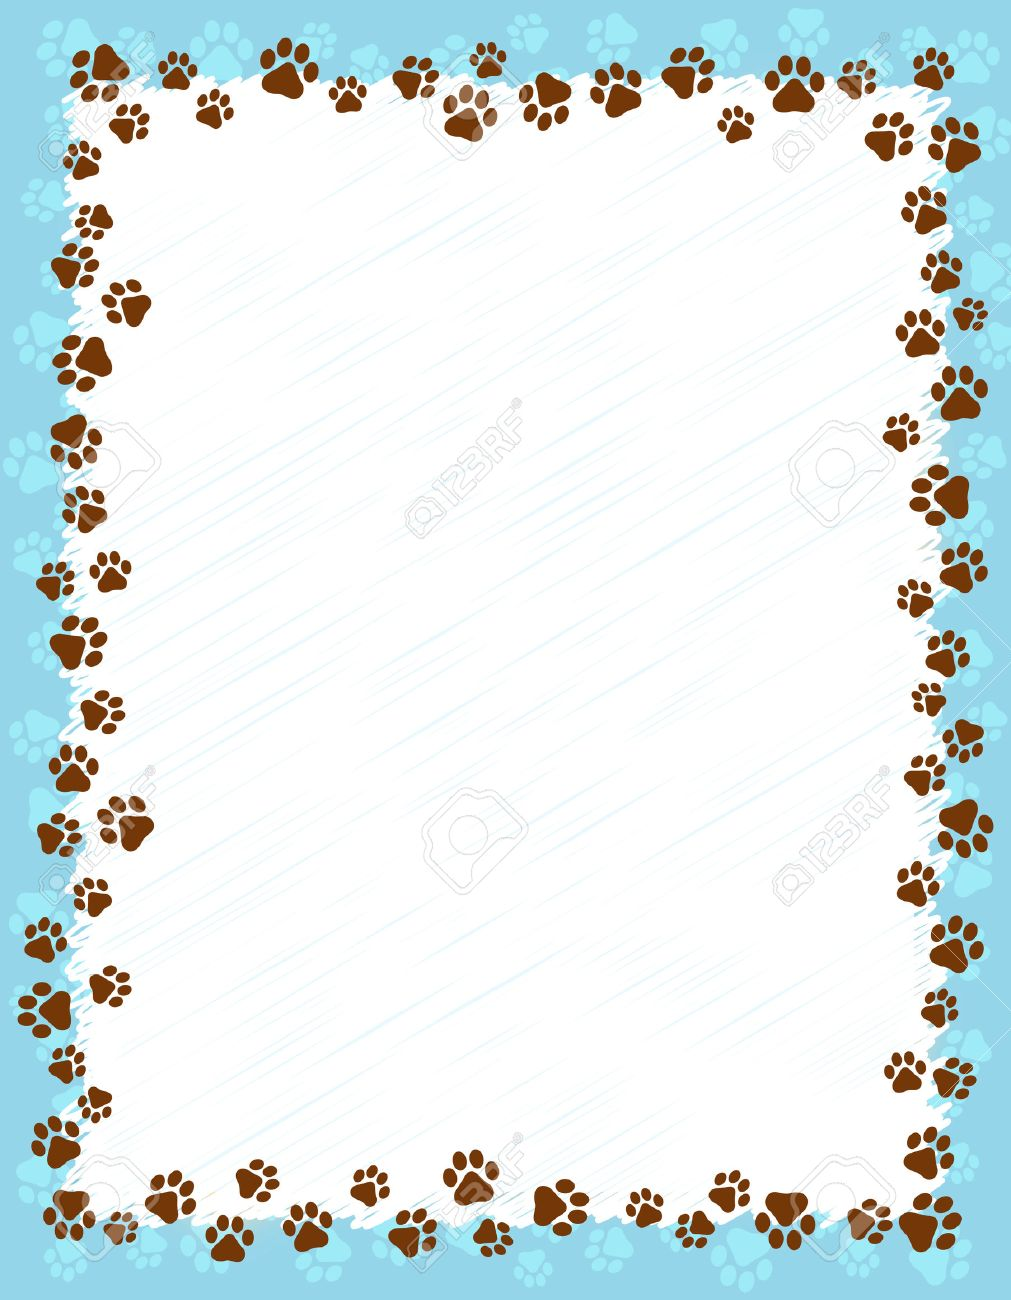 Dog Paw Prints Border Frame On Light Blue Grunge Background